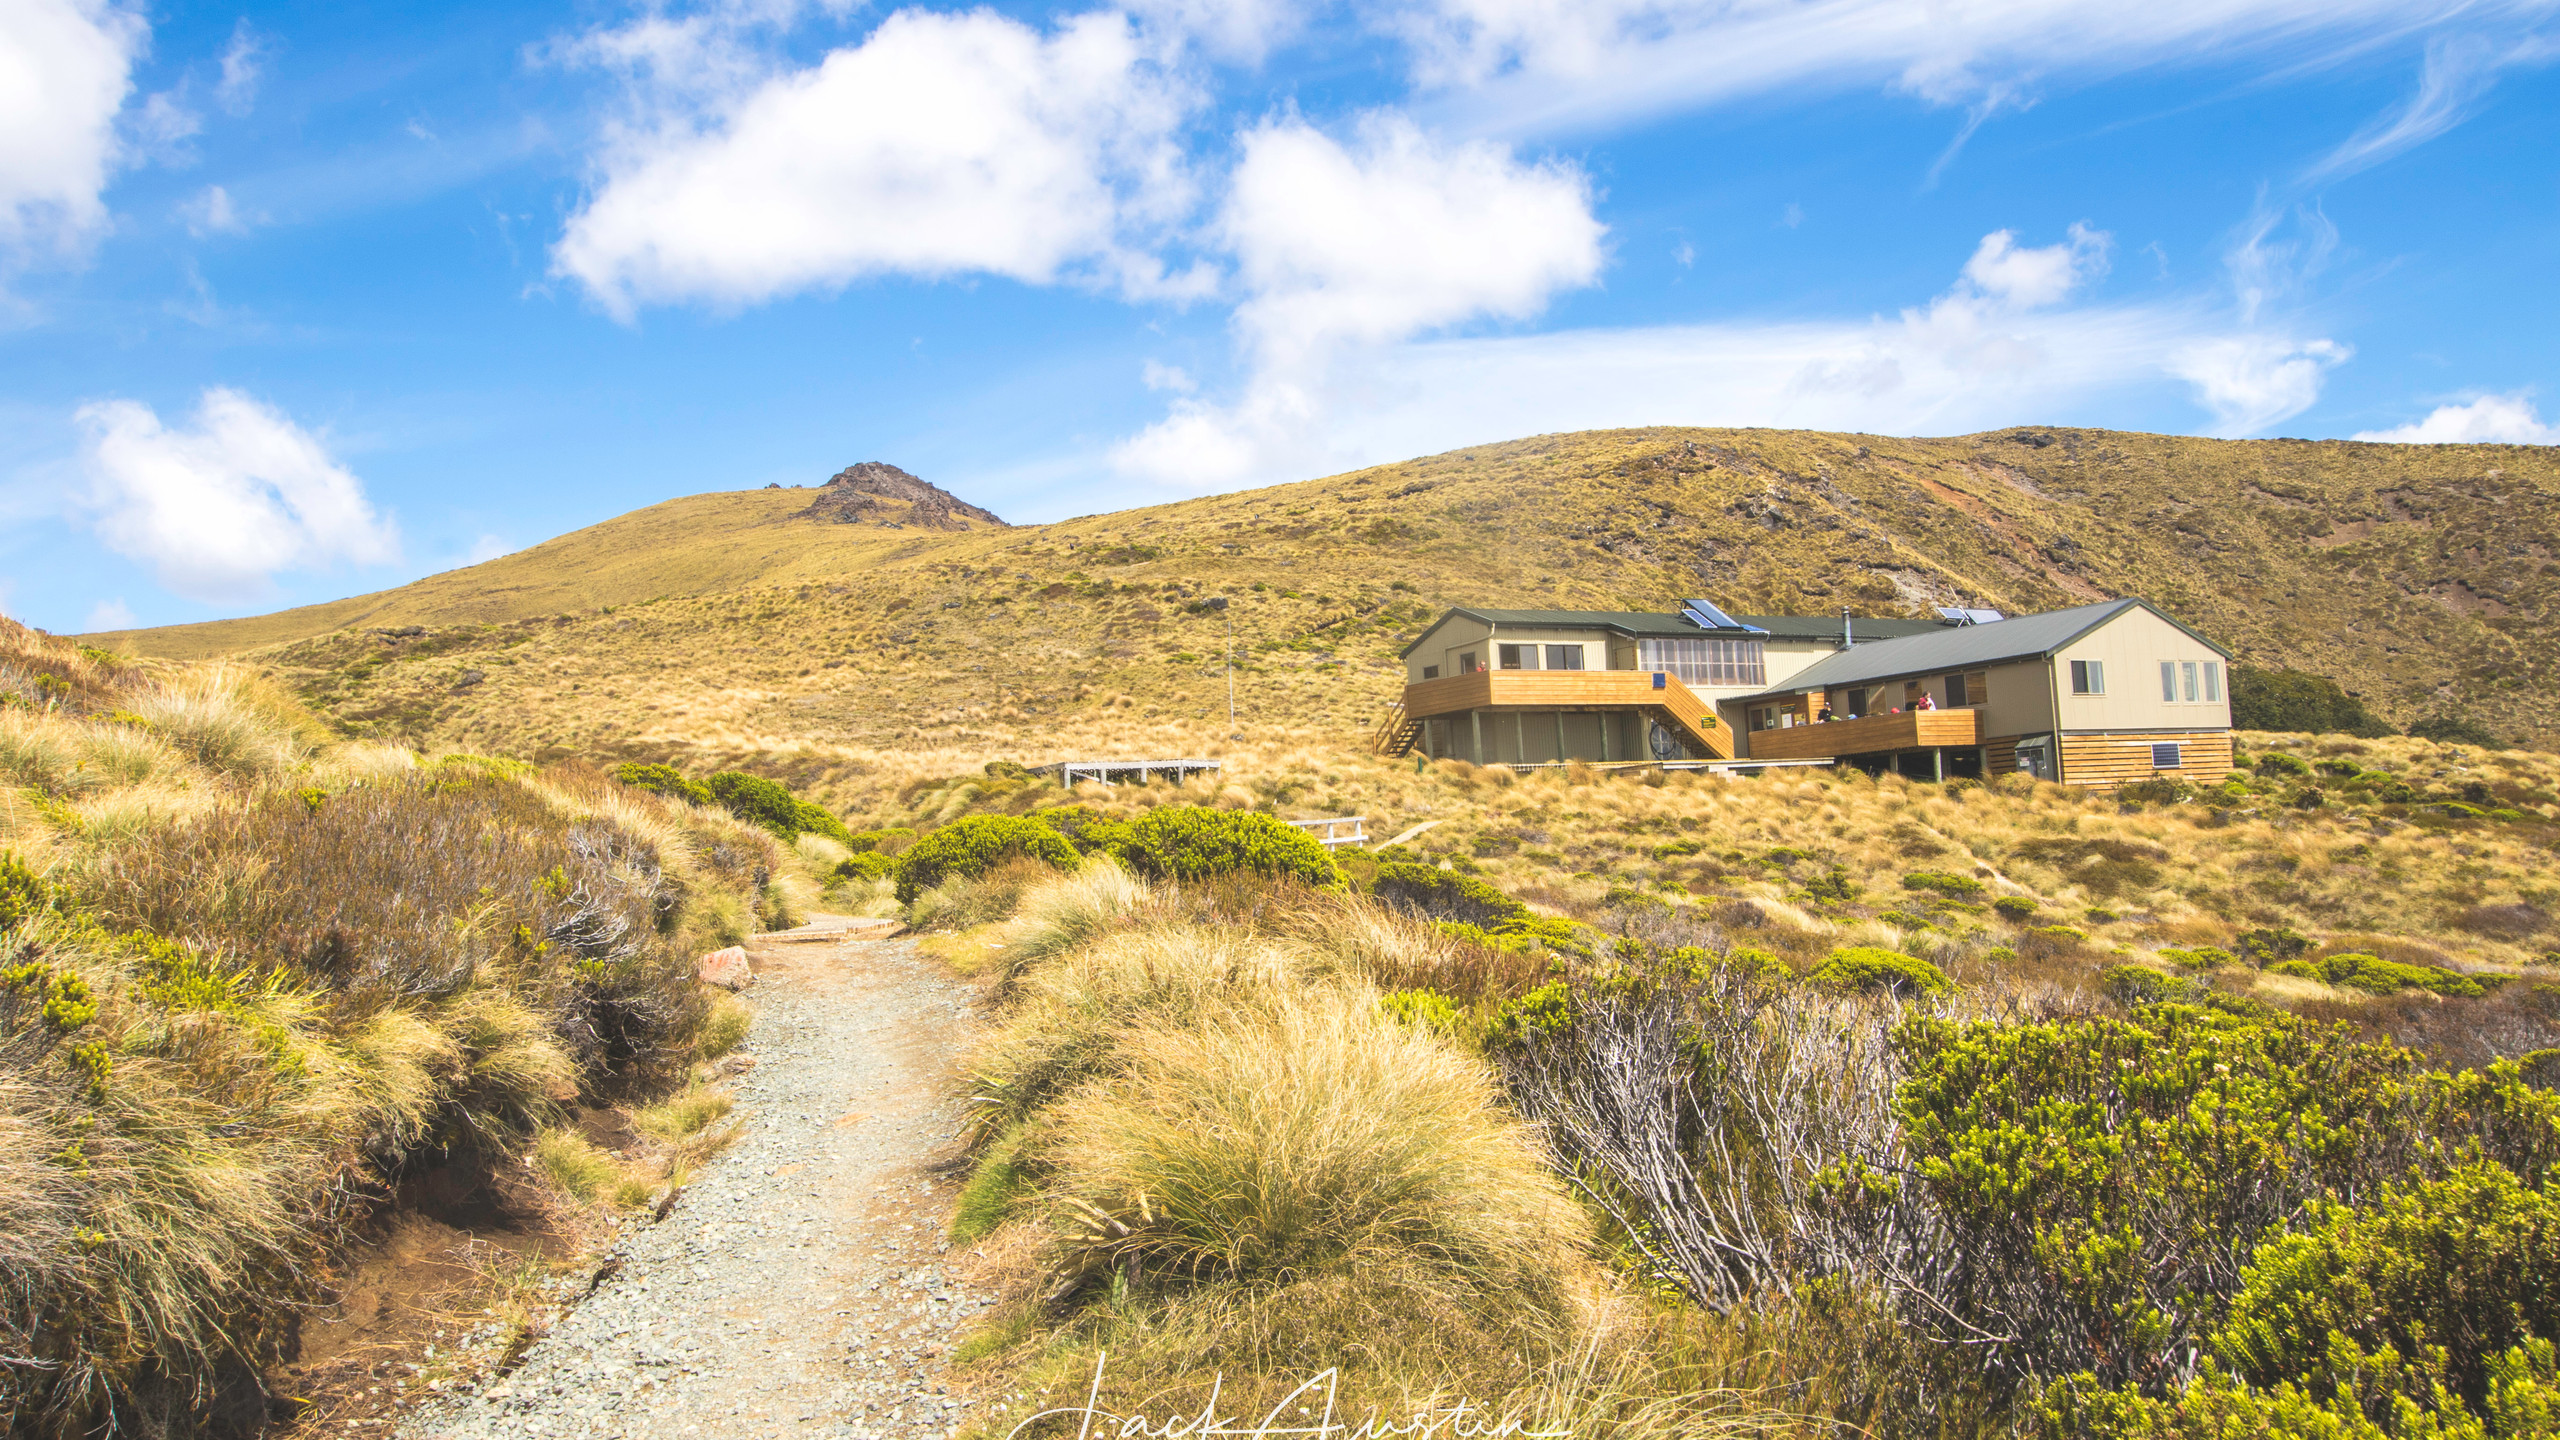 The track winding up to Luxmore hut